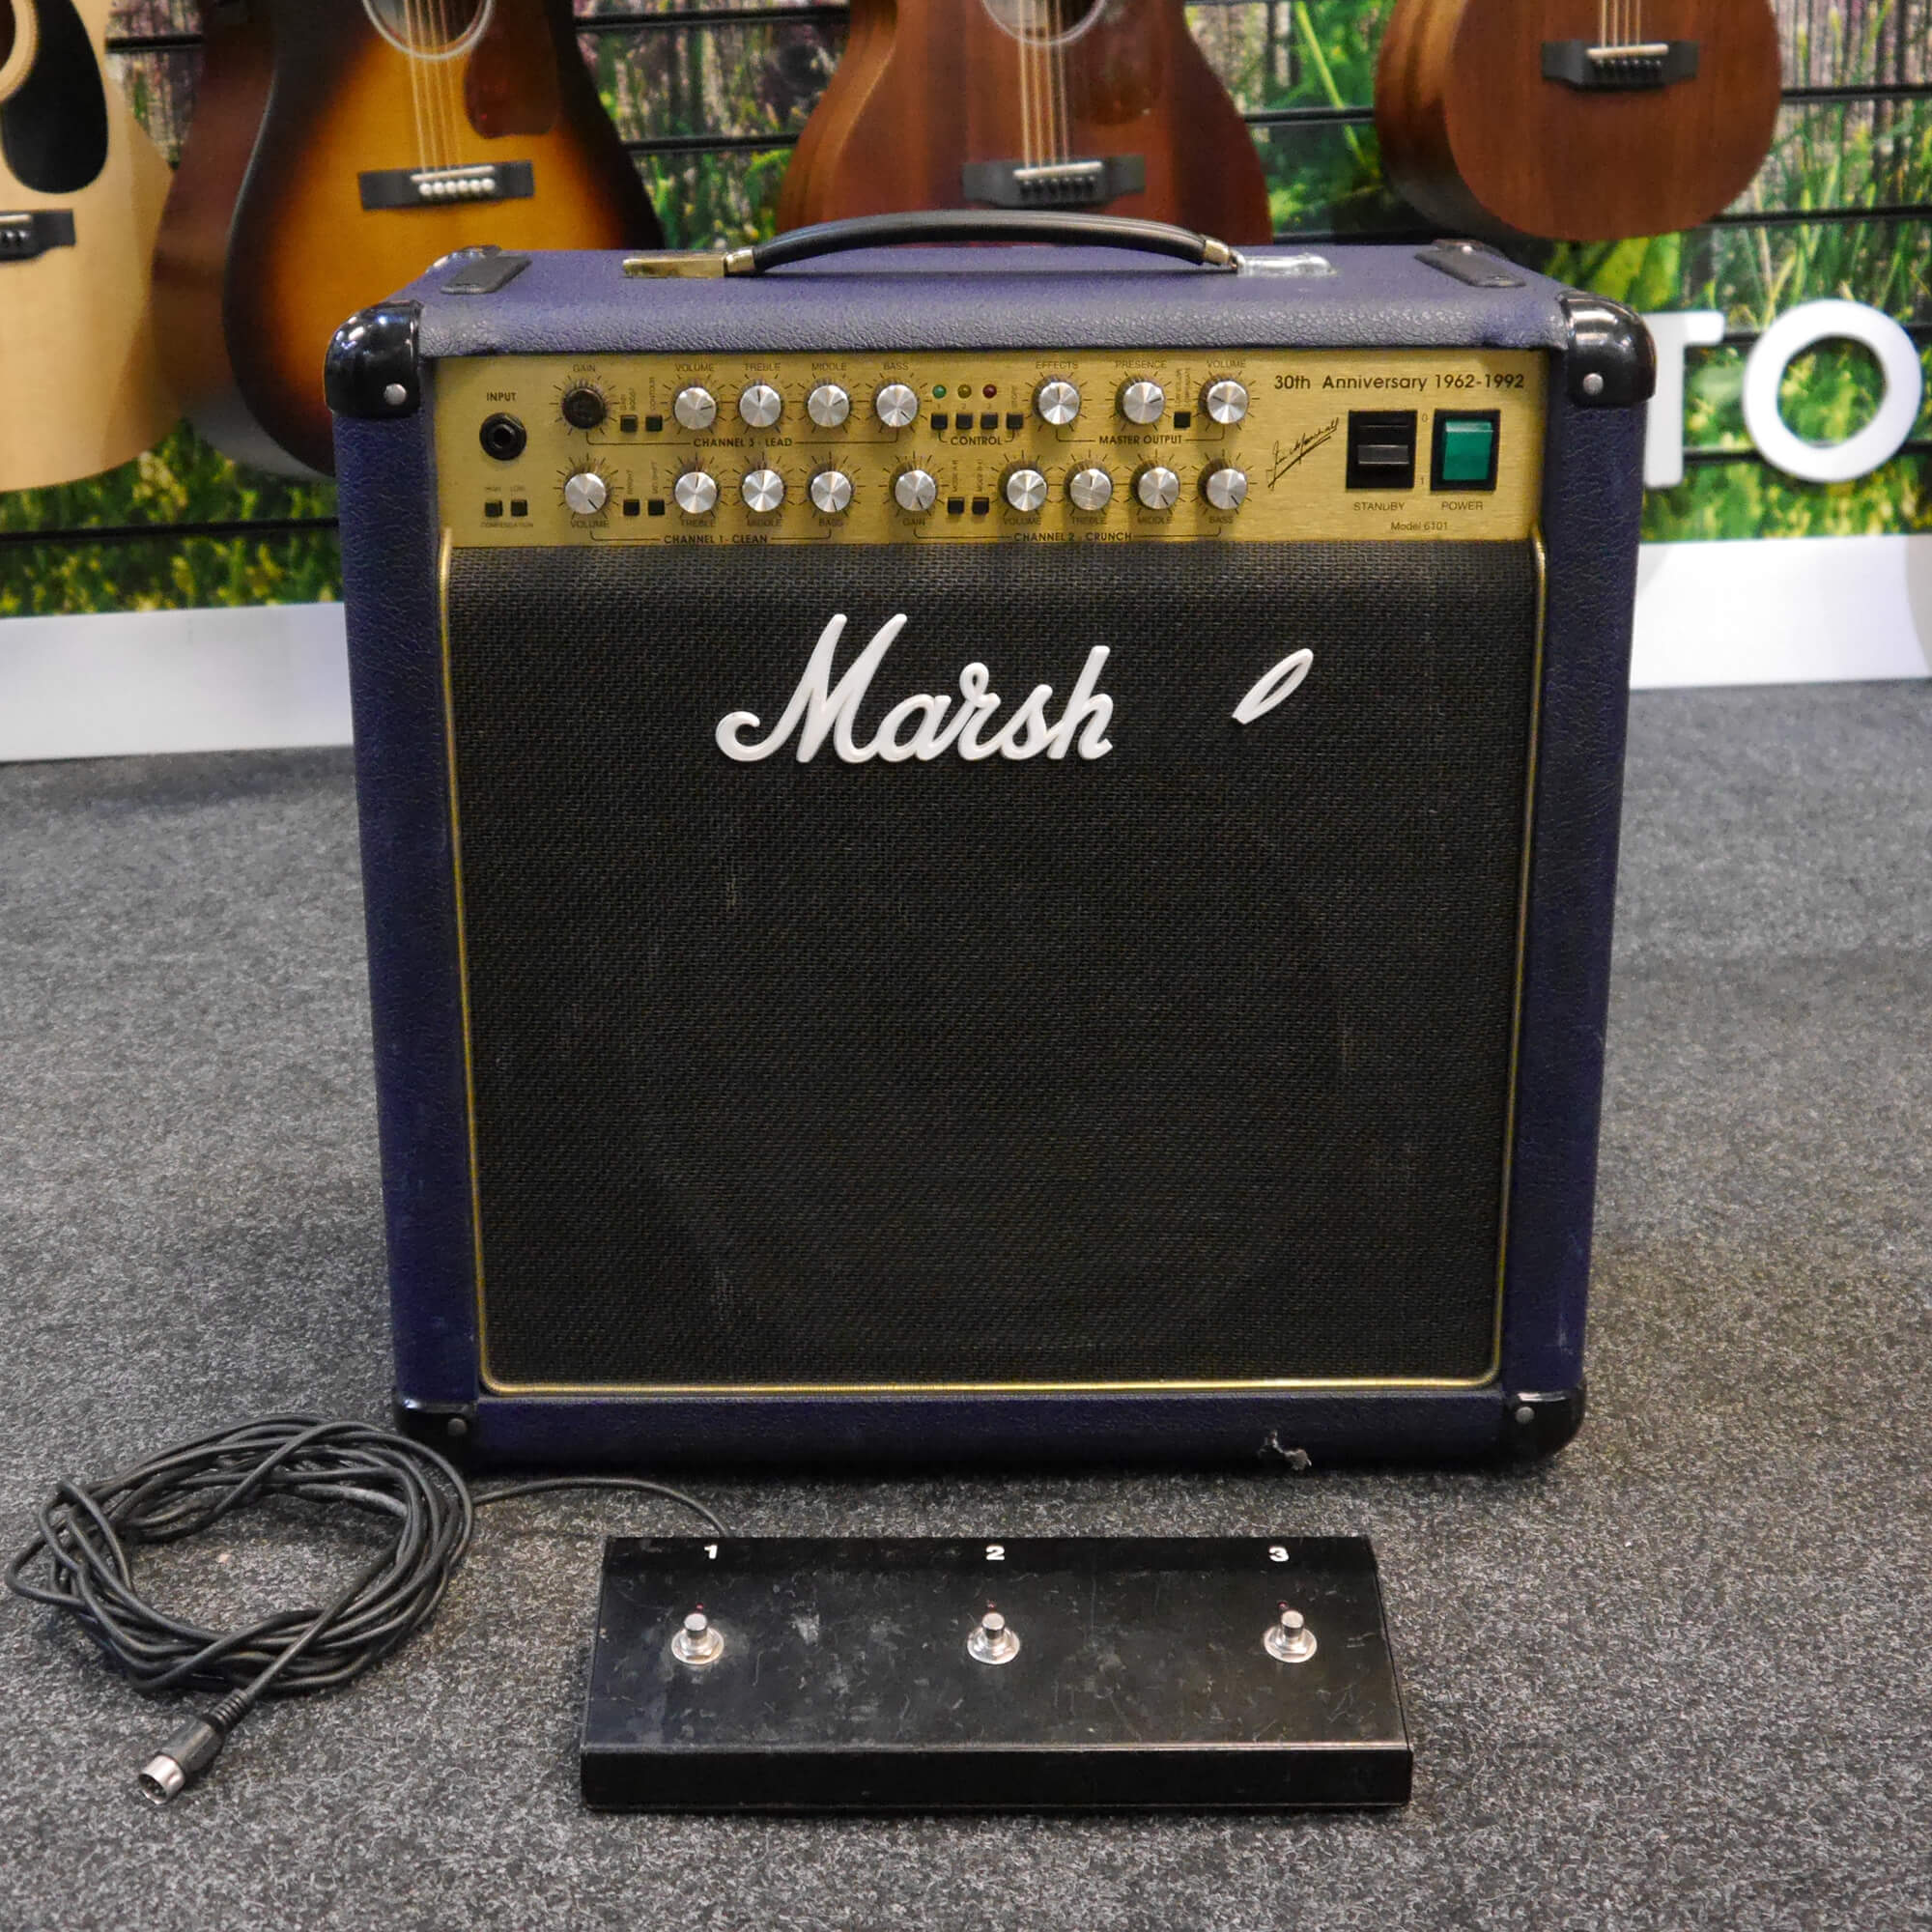 Marshall 6101 30th Anniversary Amplifier - Blue - 2nd Hand **COLLECTION ONLY**